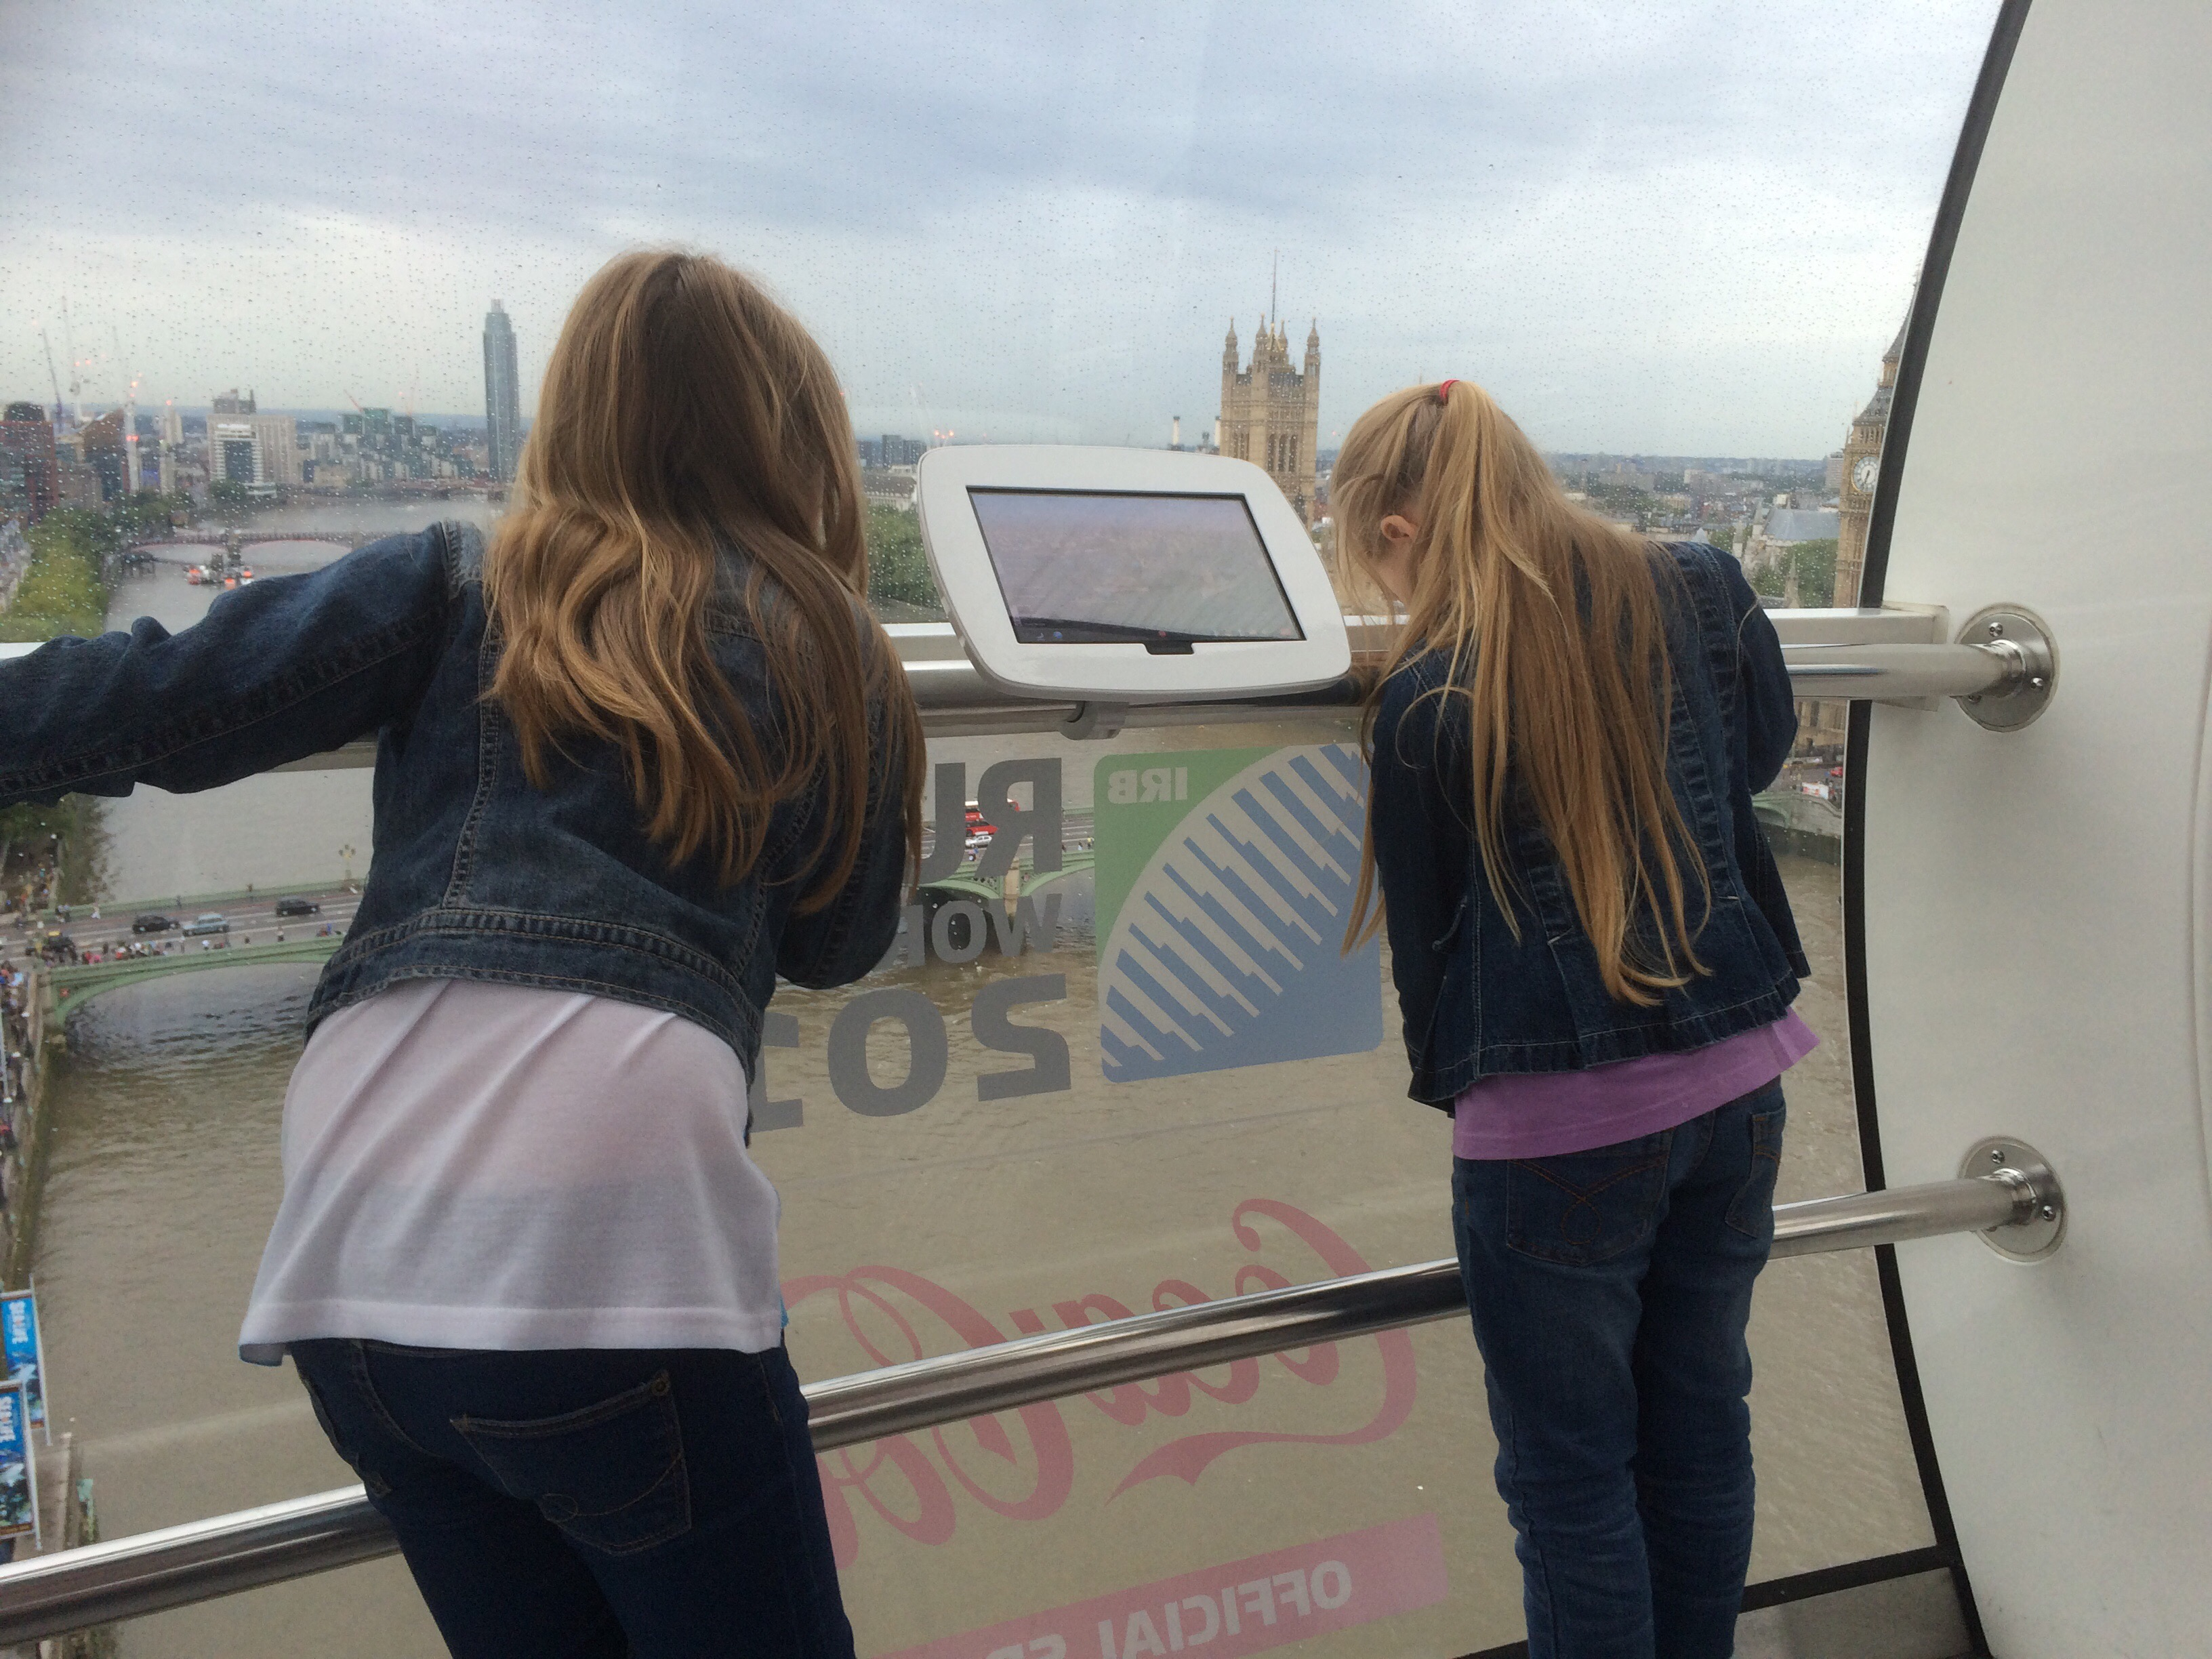 Girls on The London Eye